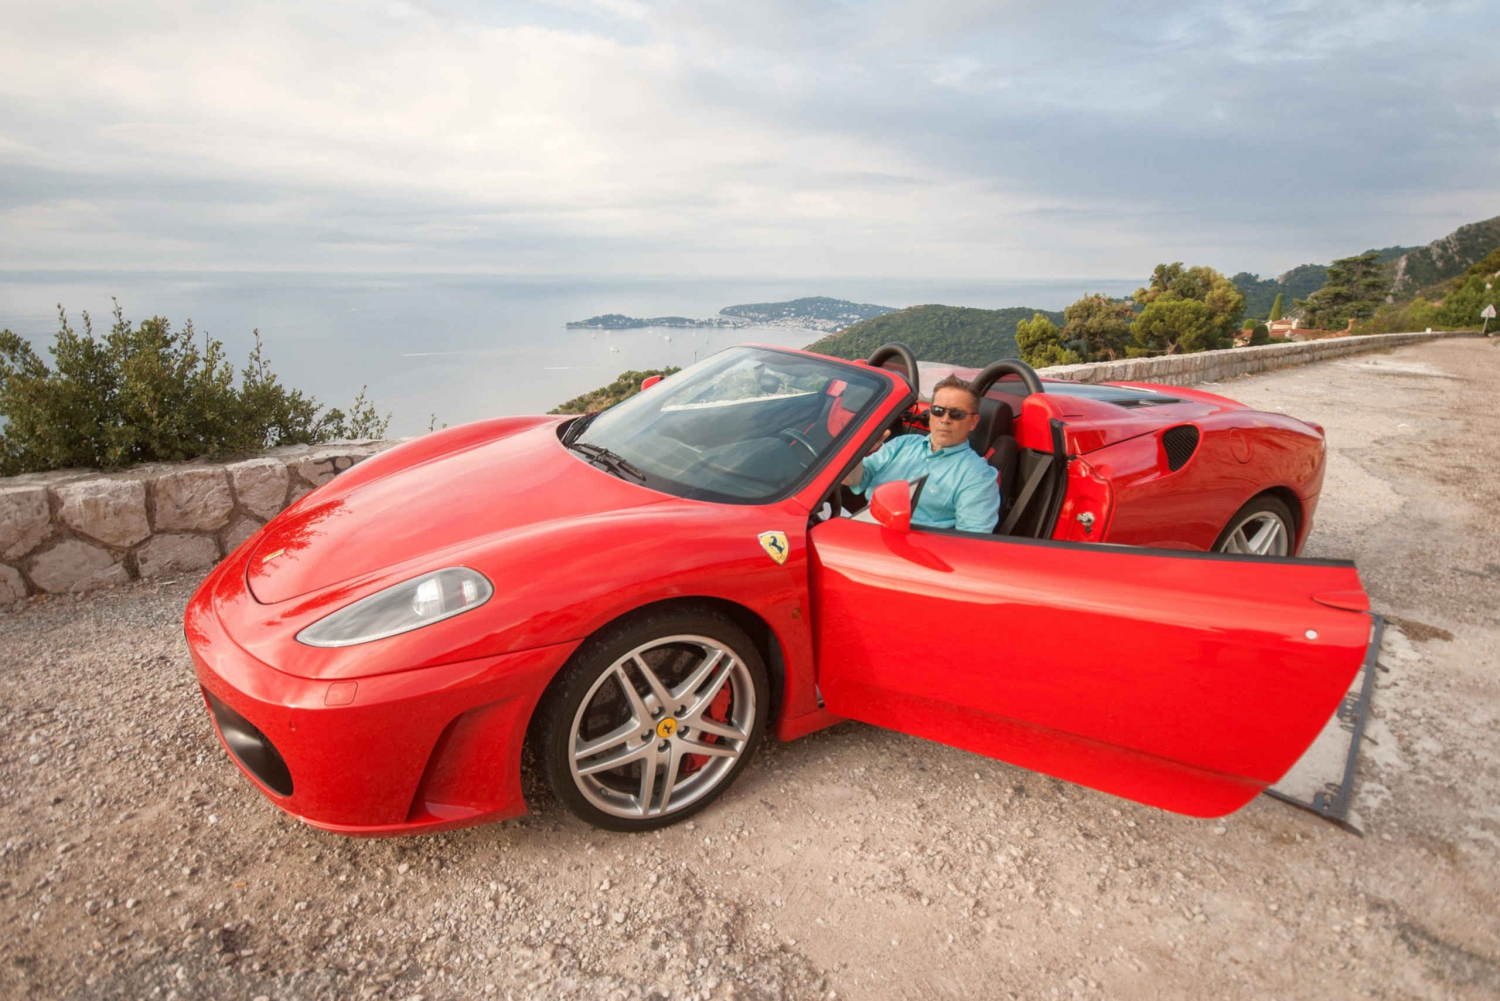 From Nice: Ferrari Driving Experience on the French Riviera